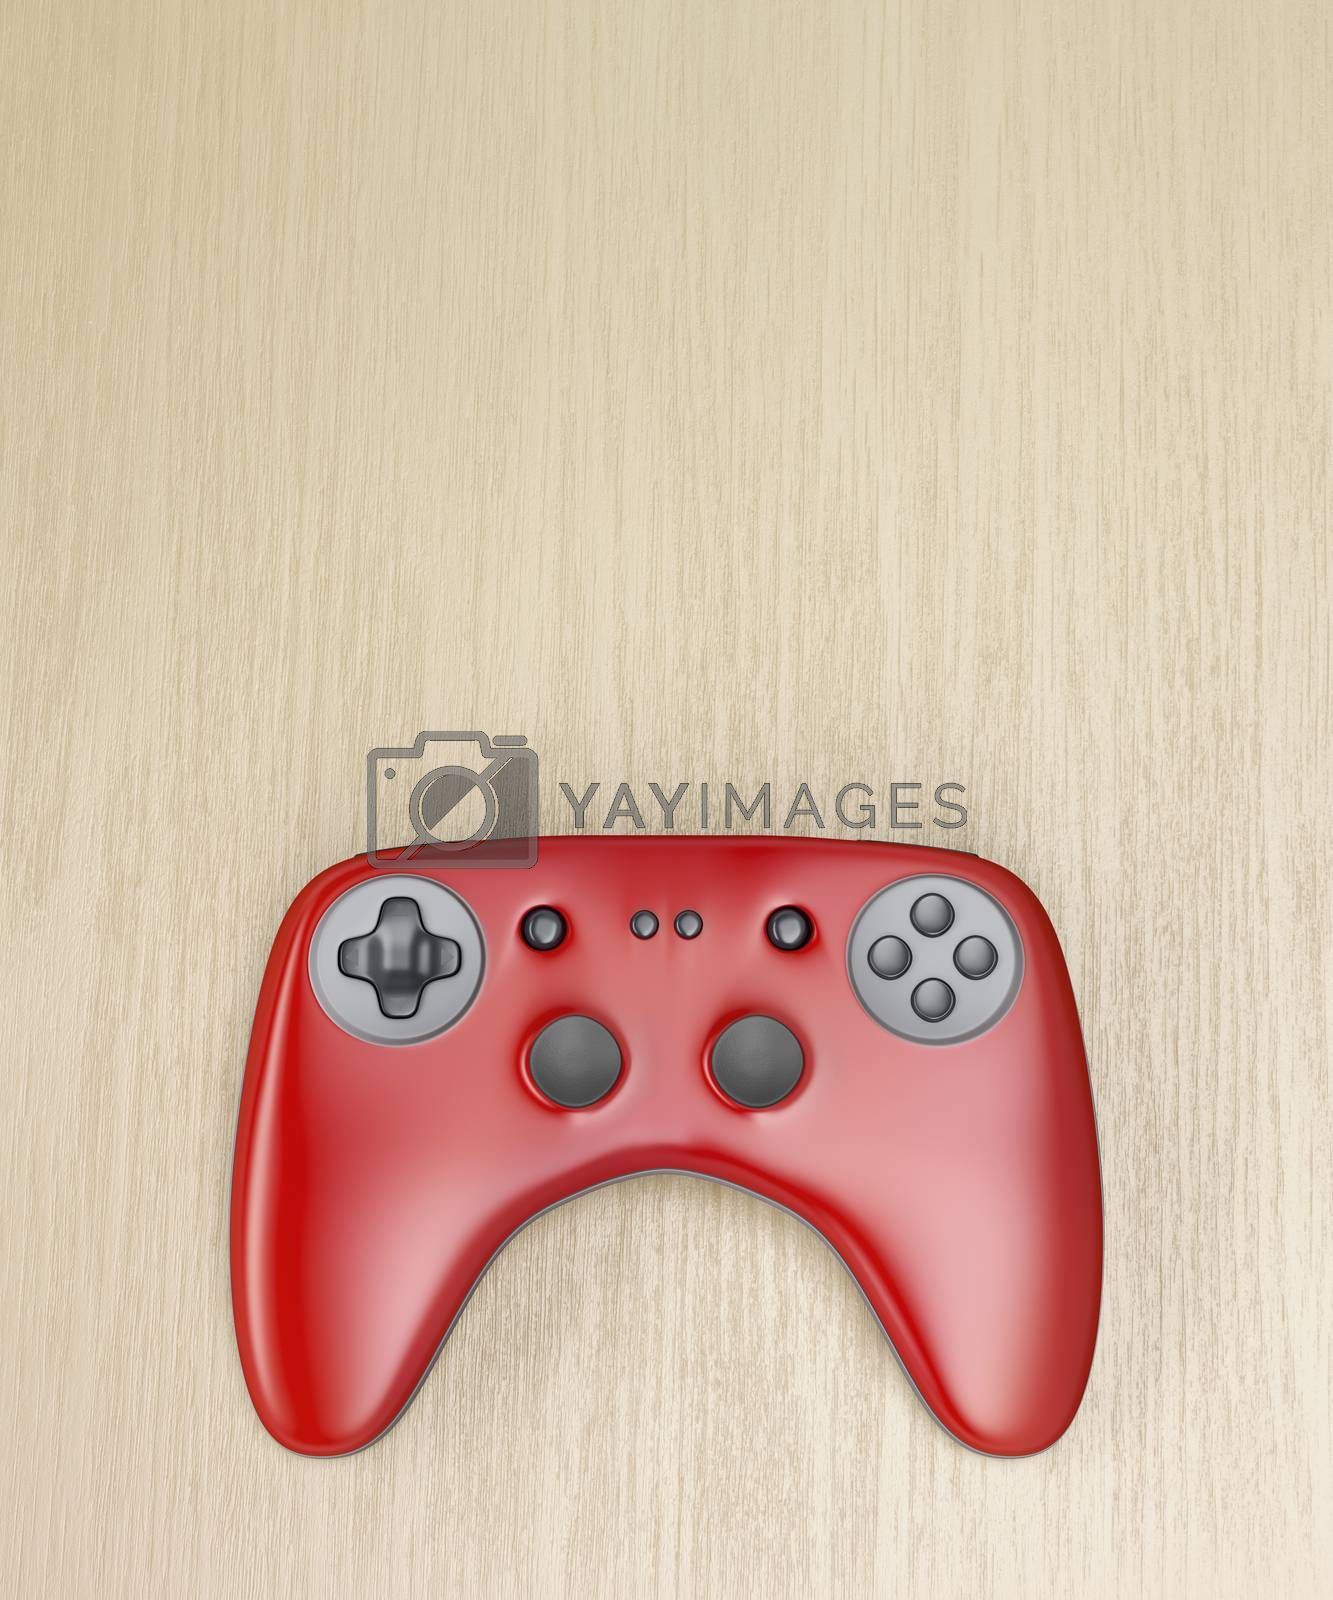 Red wireless gamepad on wooden desk, top view